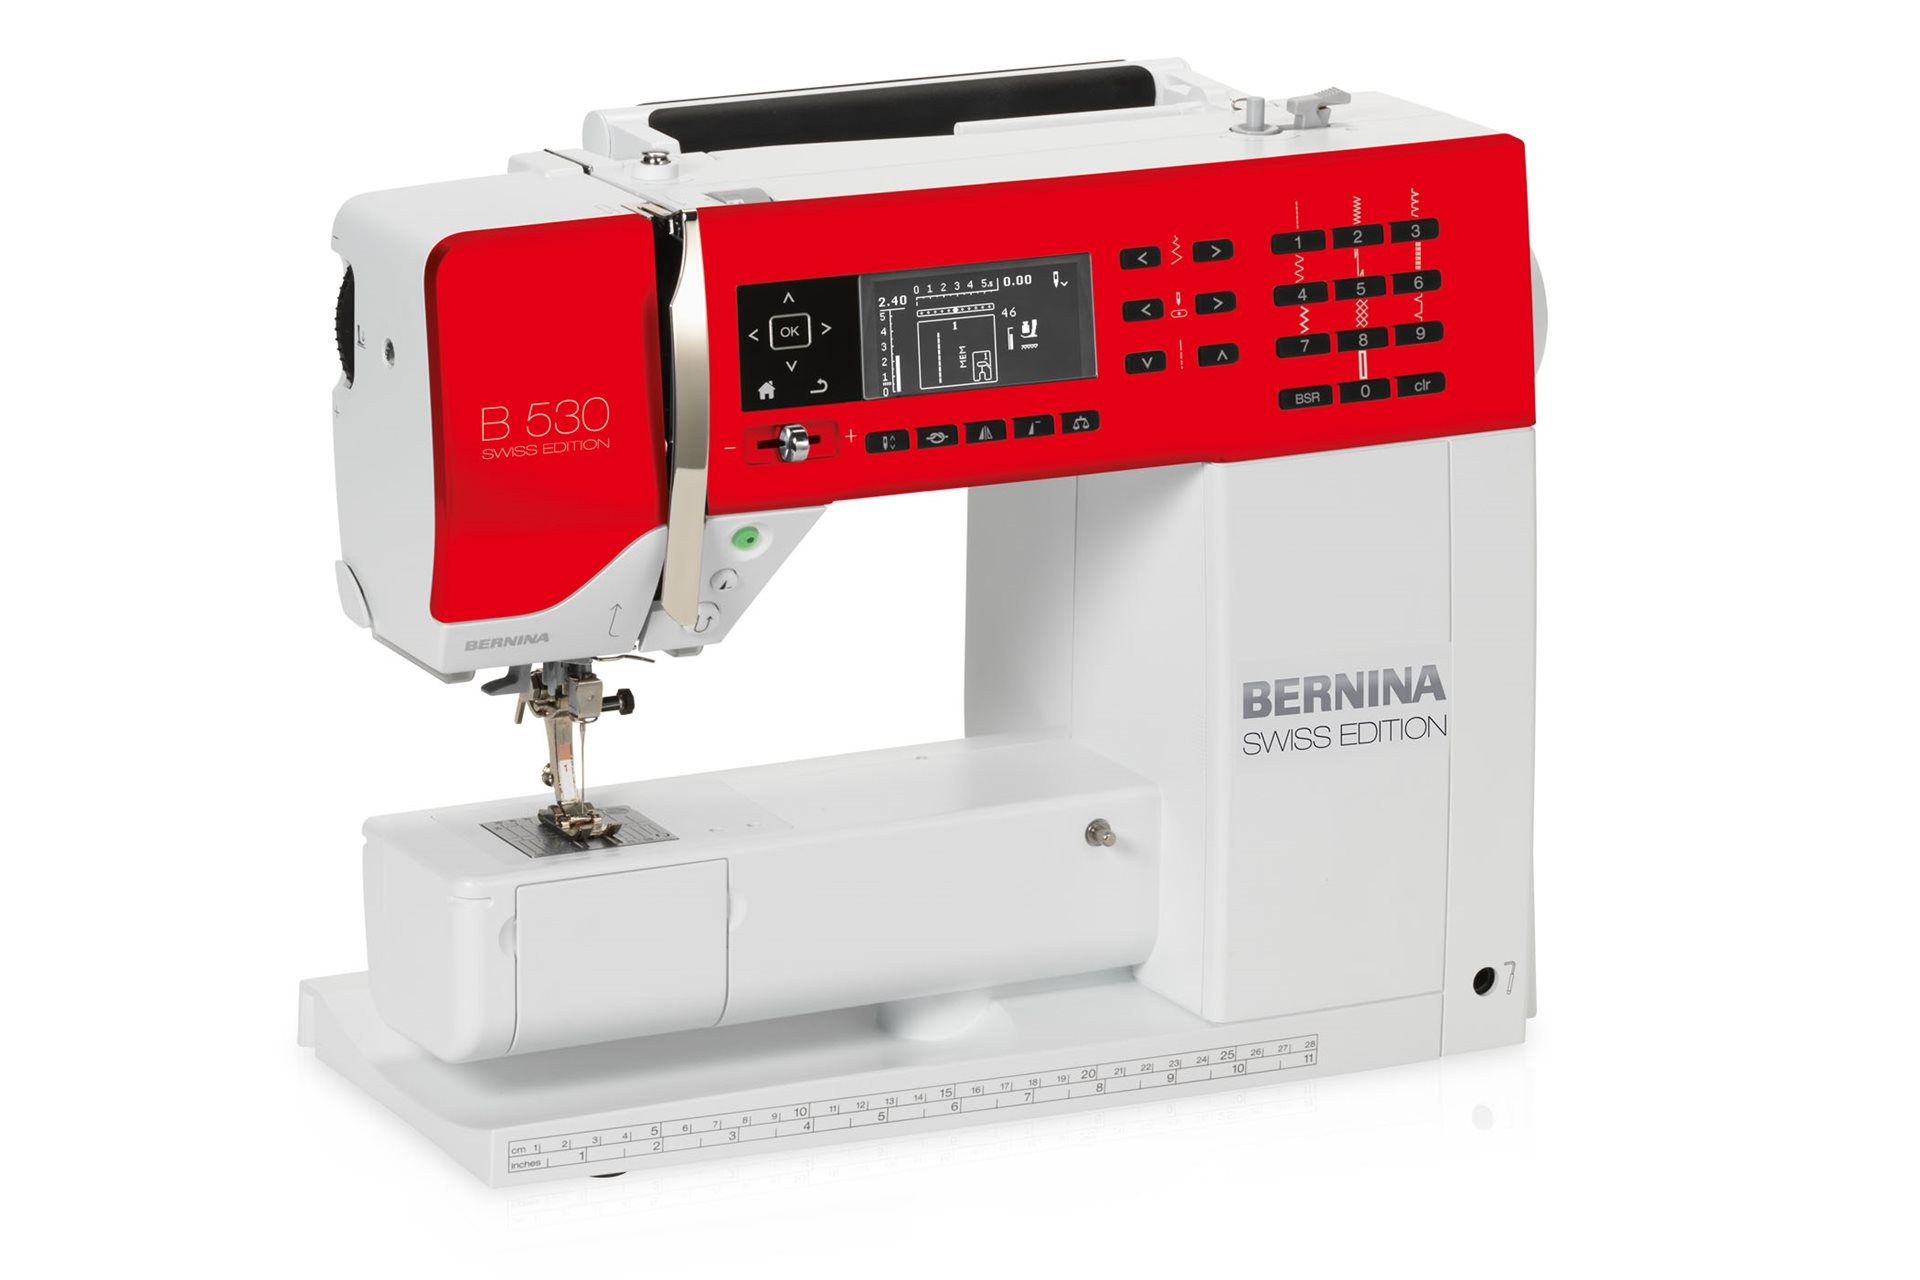 BERNINA 530 SE Swiss Edition